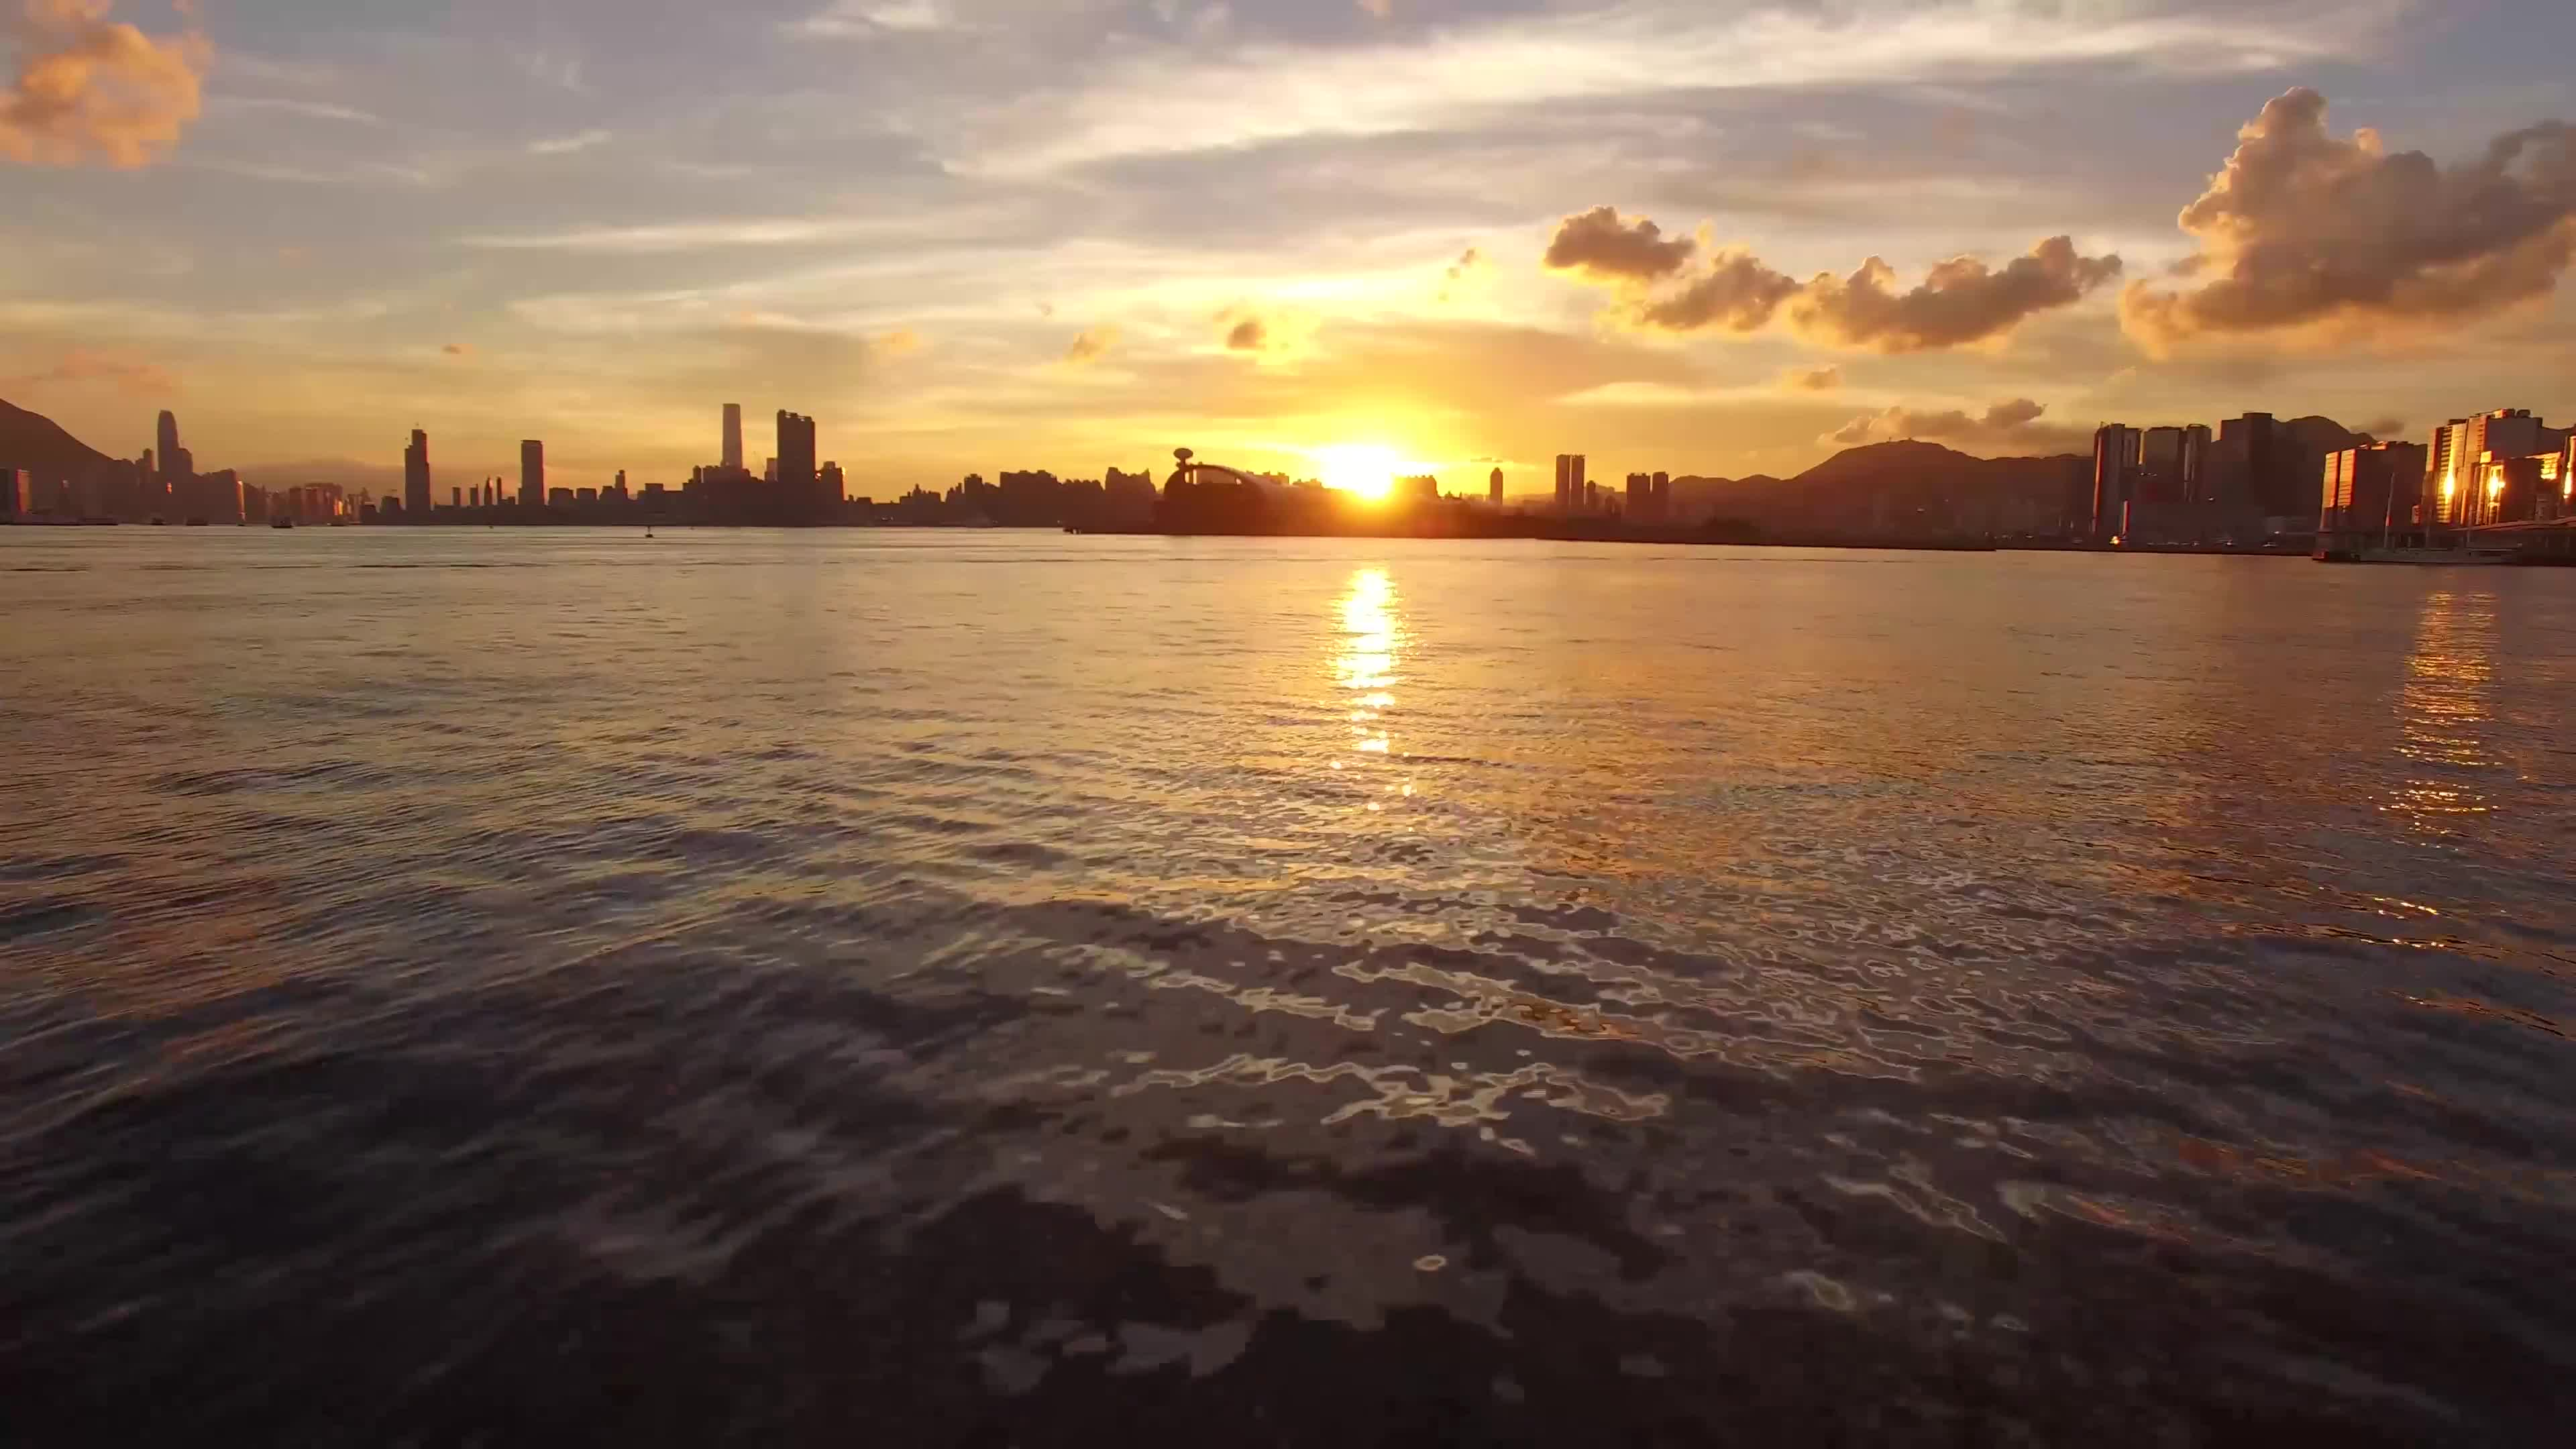 Footage of sunset view